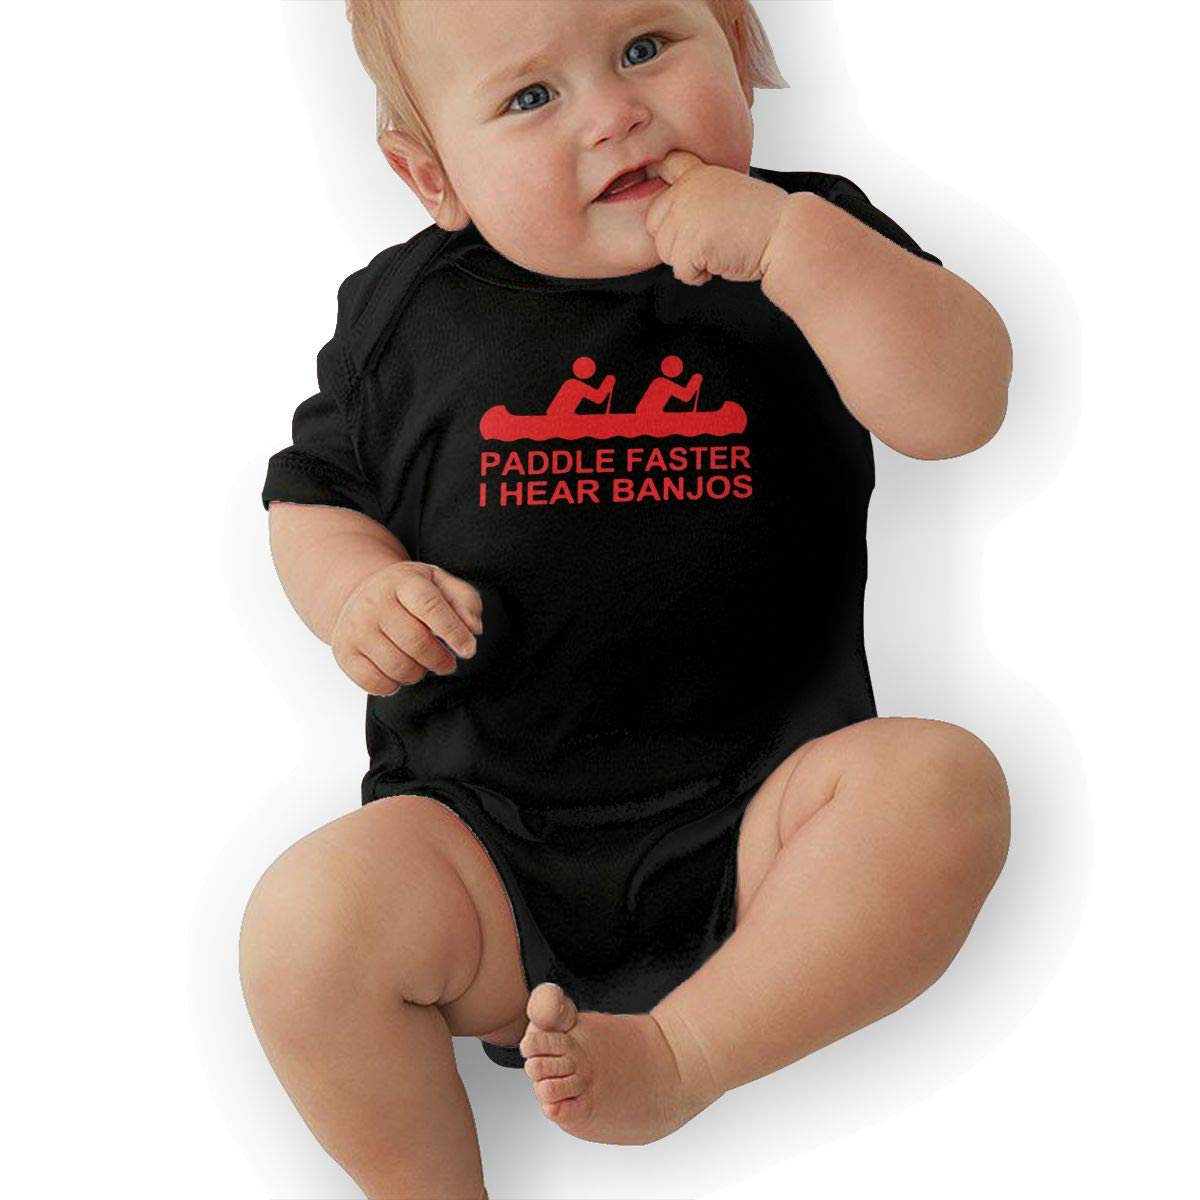 TAOHJS97 Toddler Paddle Faster I Hear Banjos Movie Short Sleeve Climbing Clothes Bodysuits Suit 6-24 Months Black